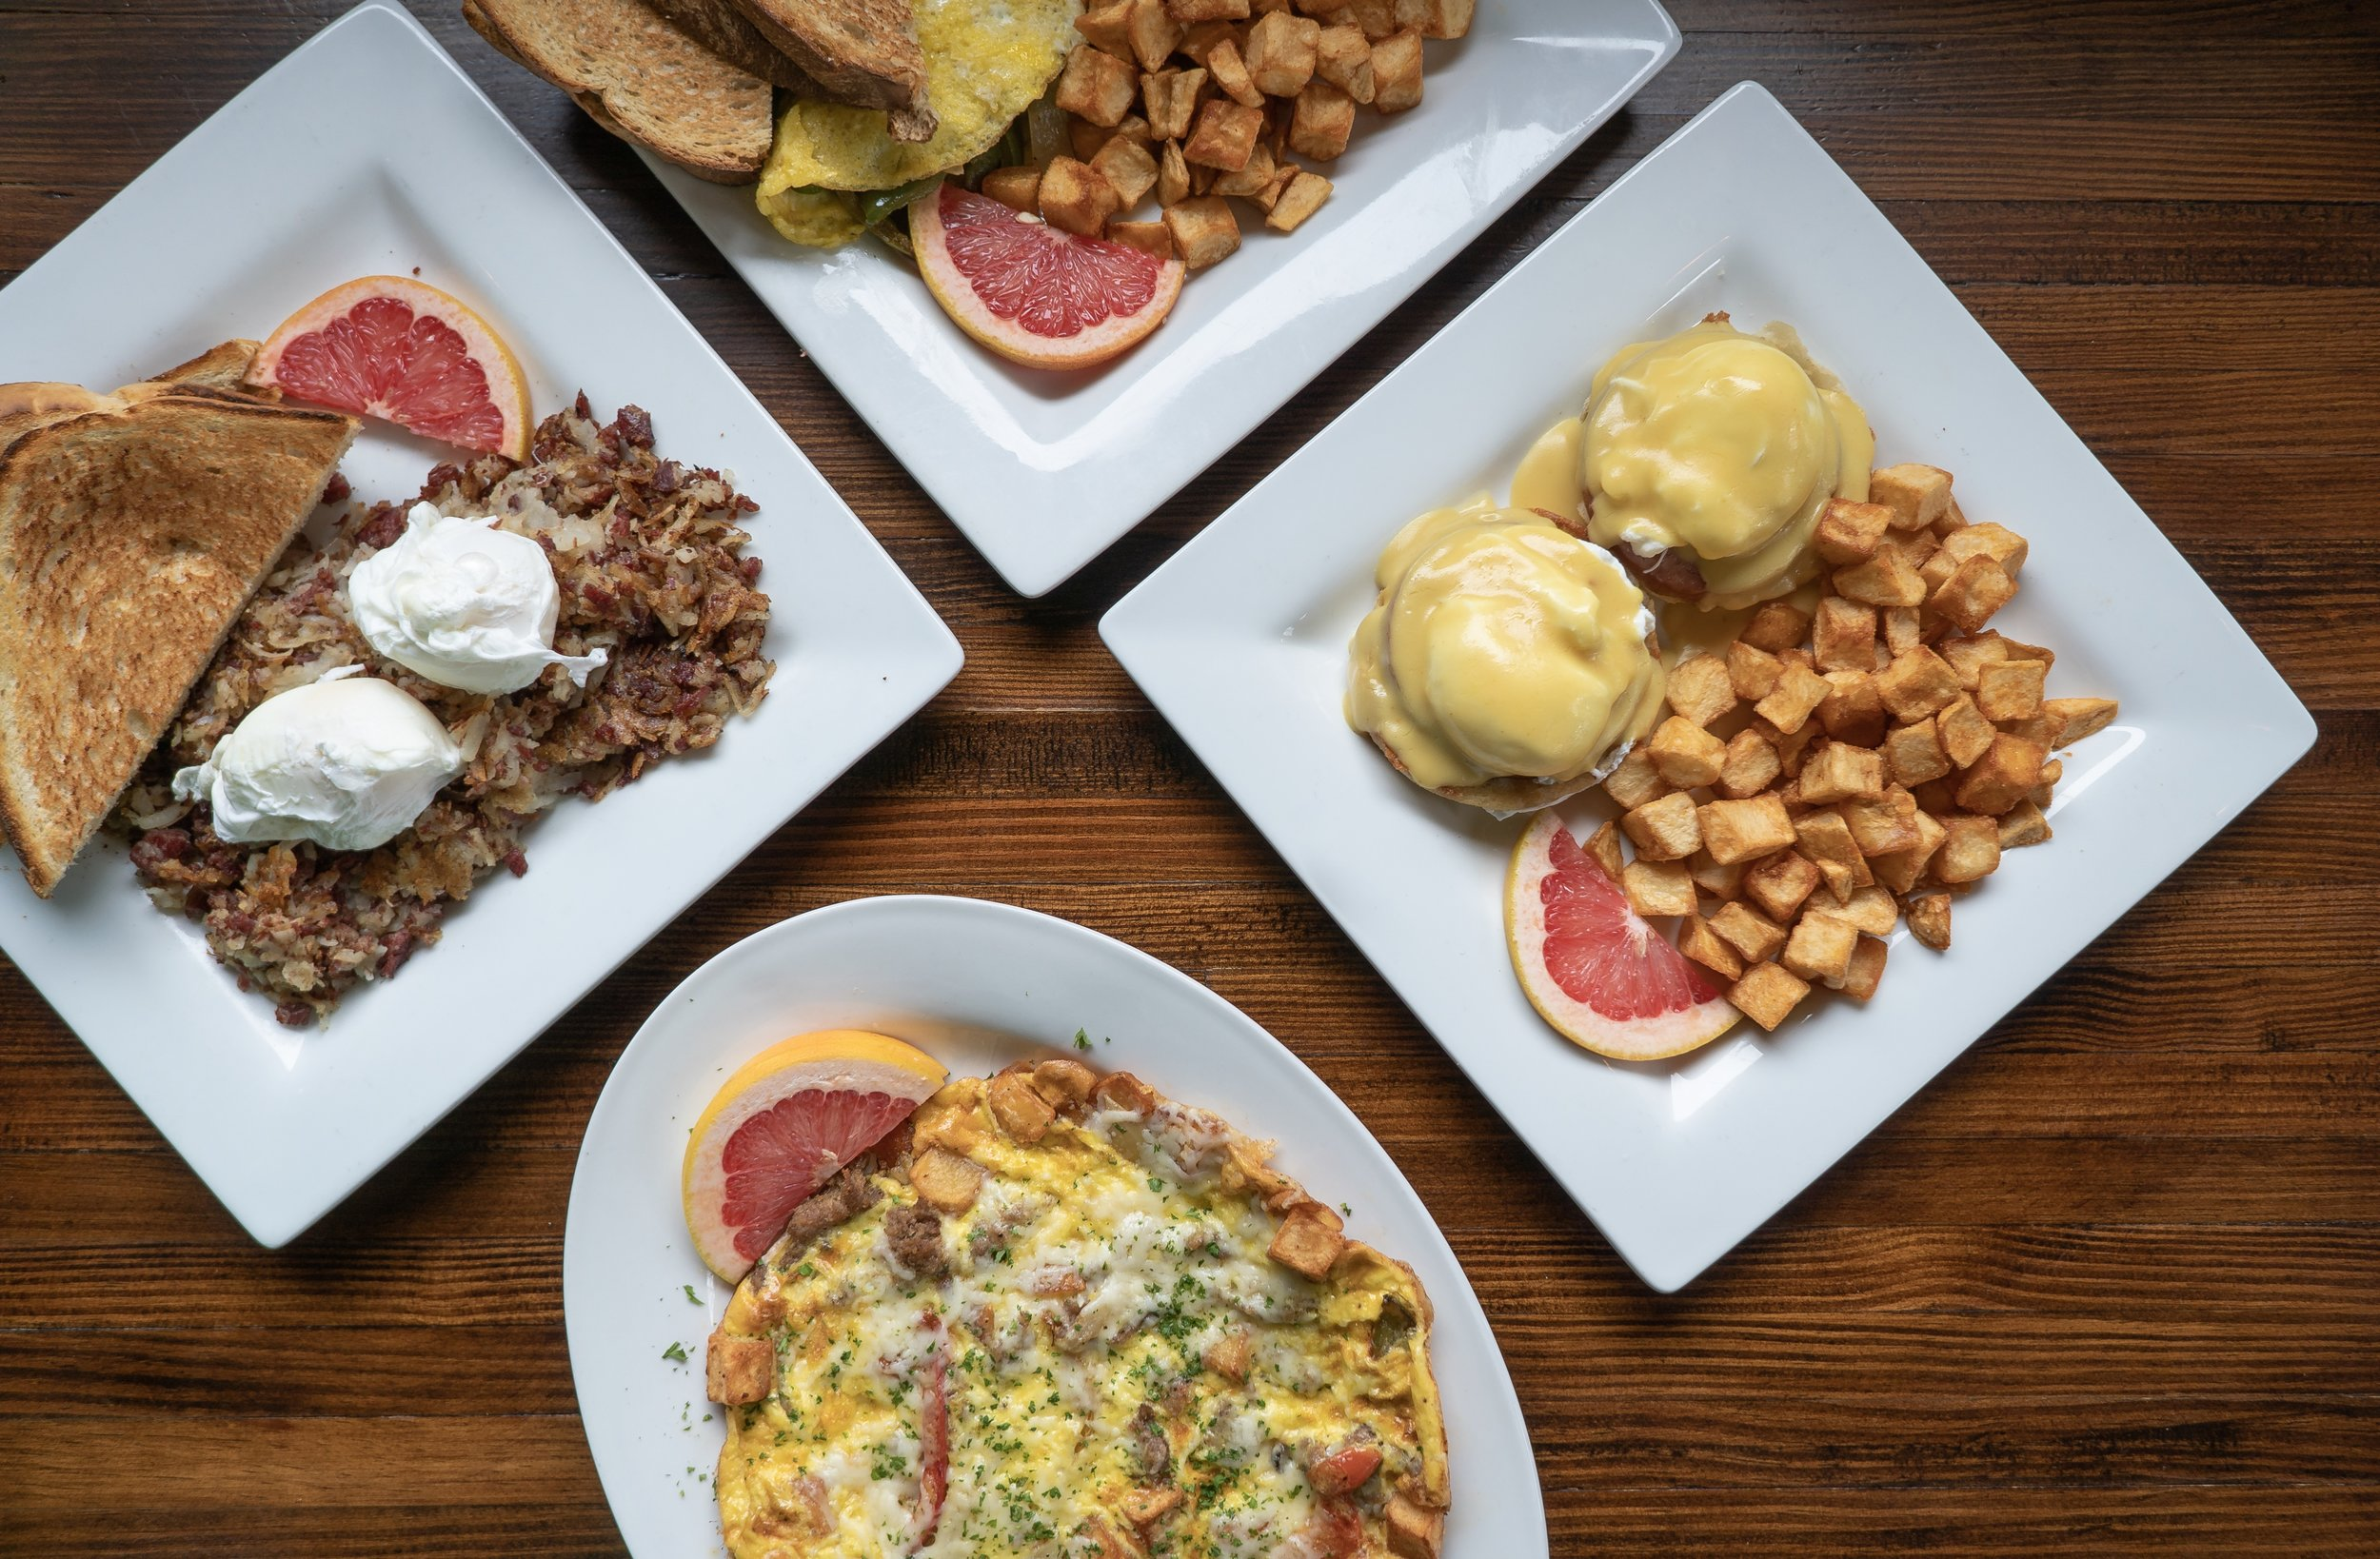 Winfield Grill has a variet of Brunch Options from Omelettes to Corned Beef Hash and more.